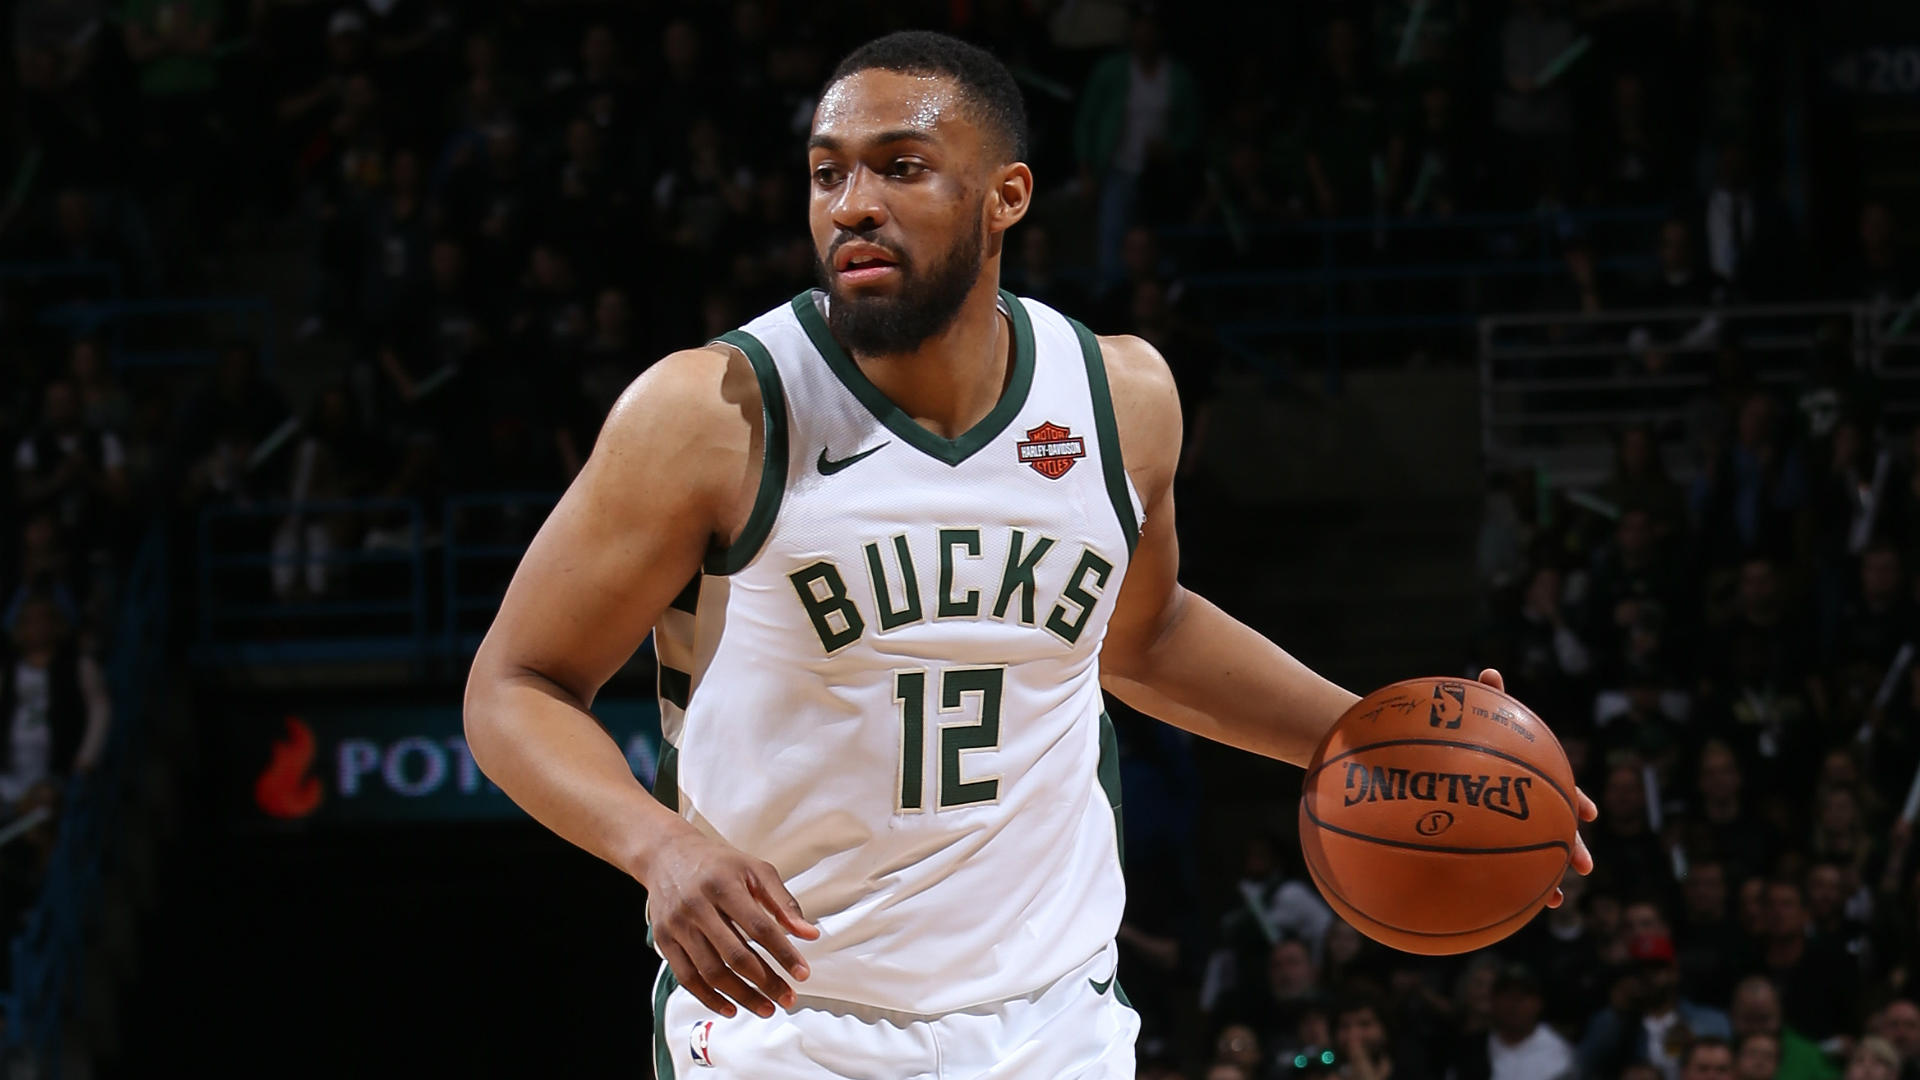 Jabari Parker signs with Chicago Bulls